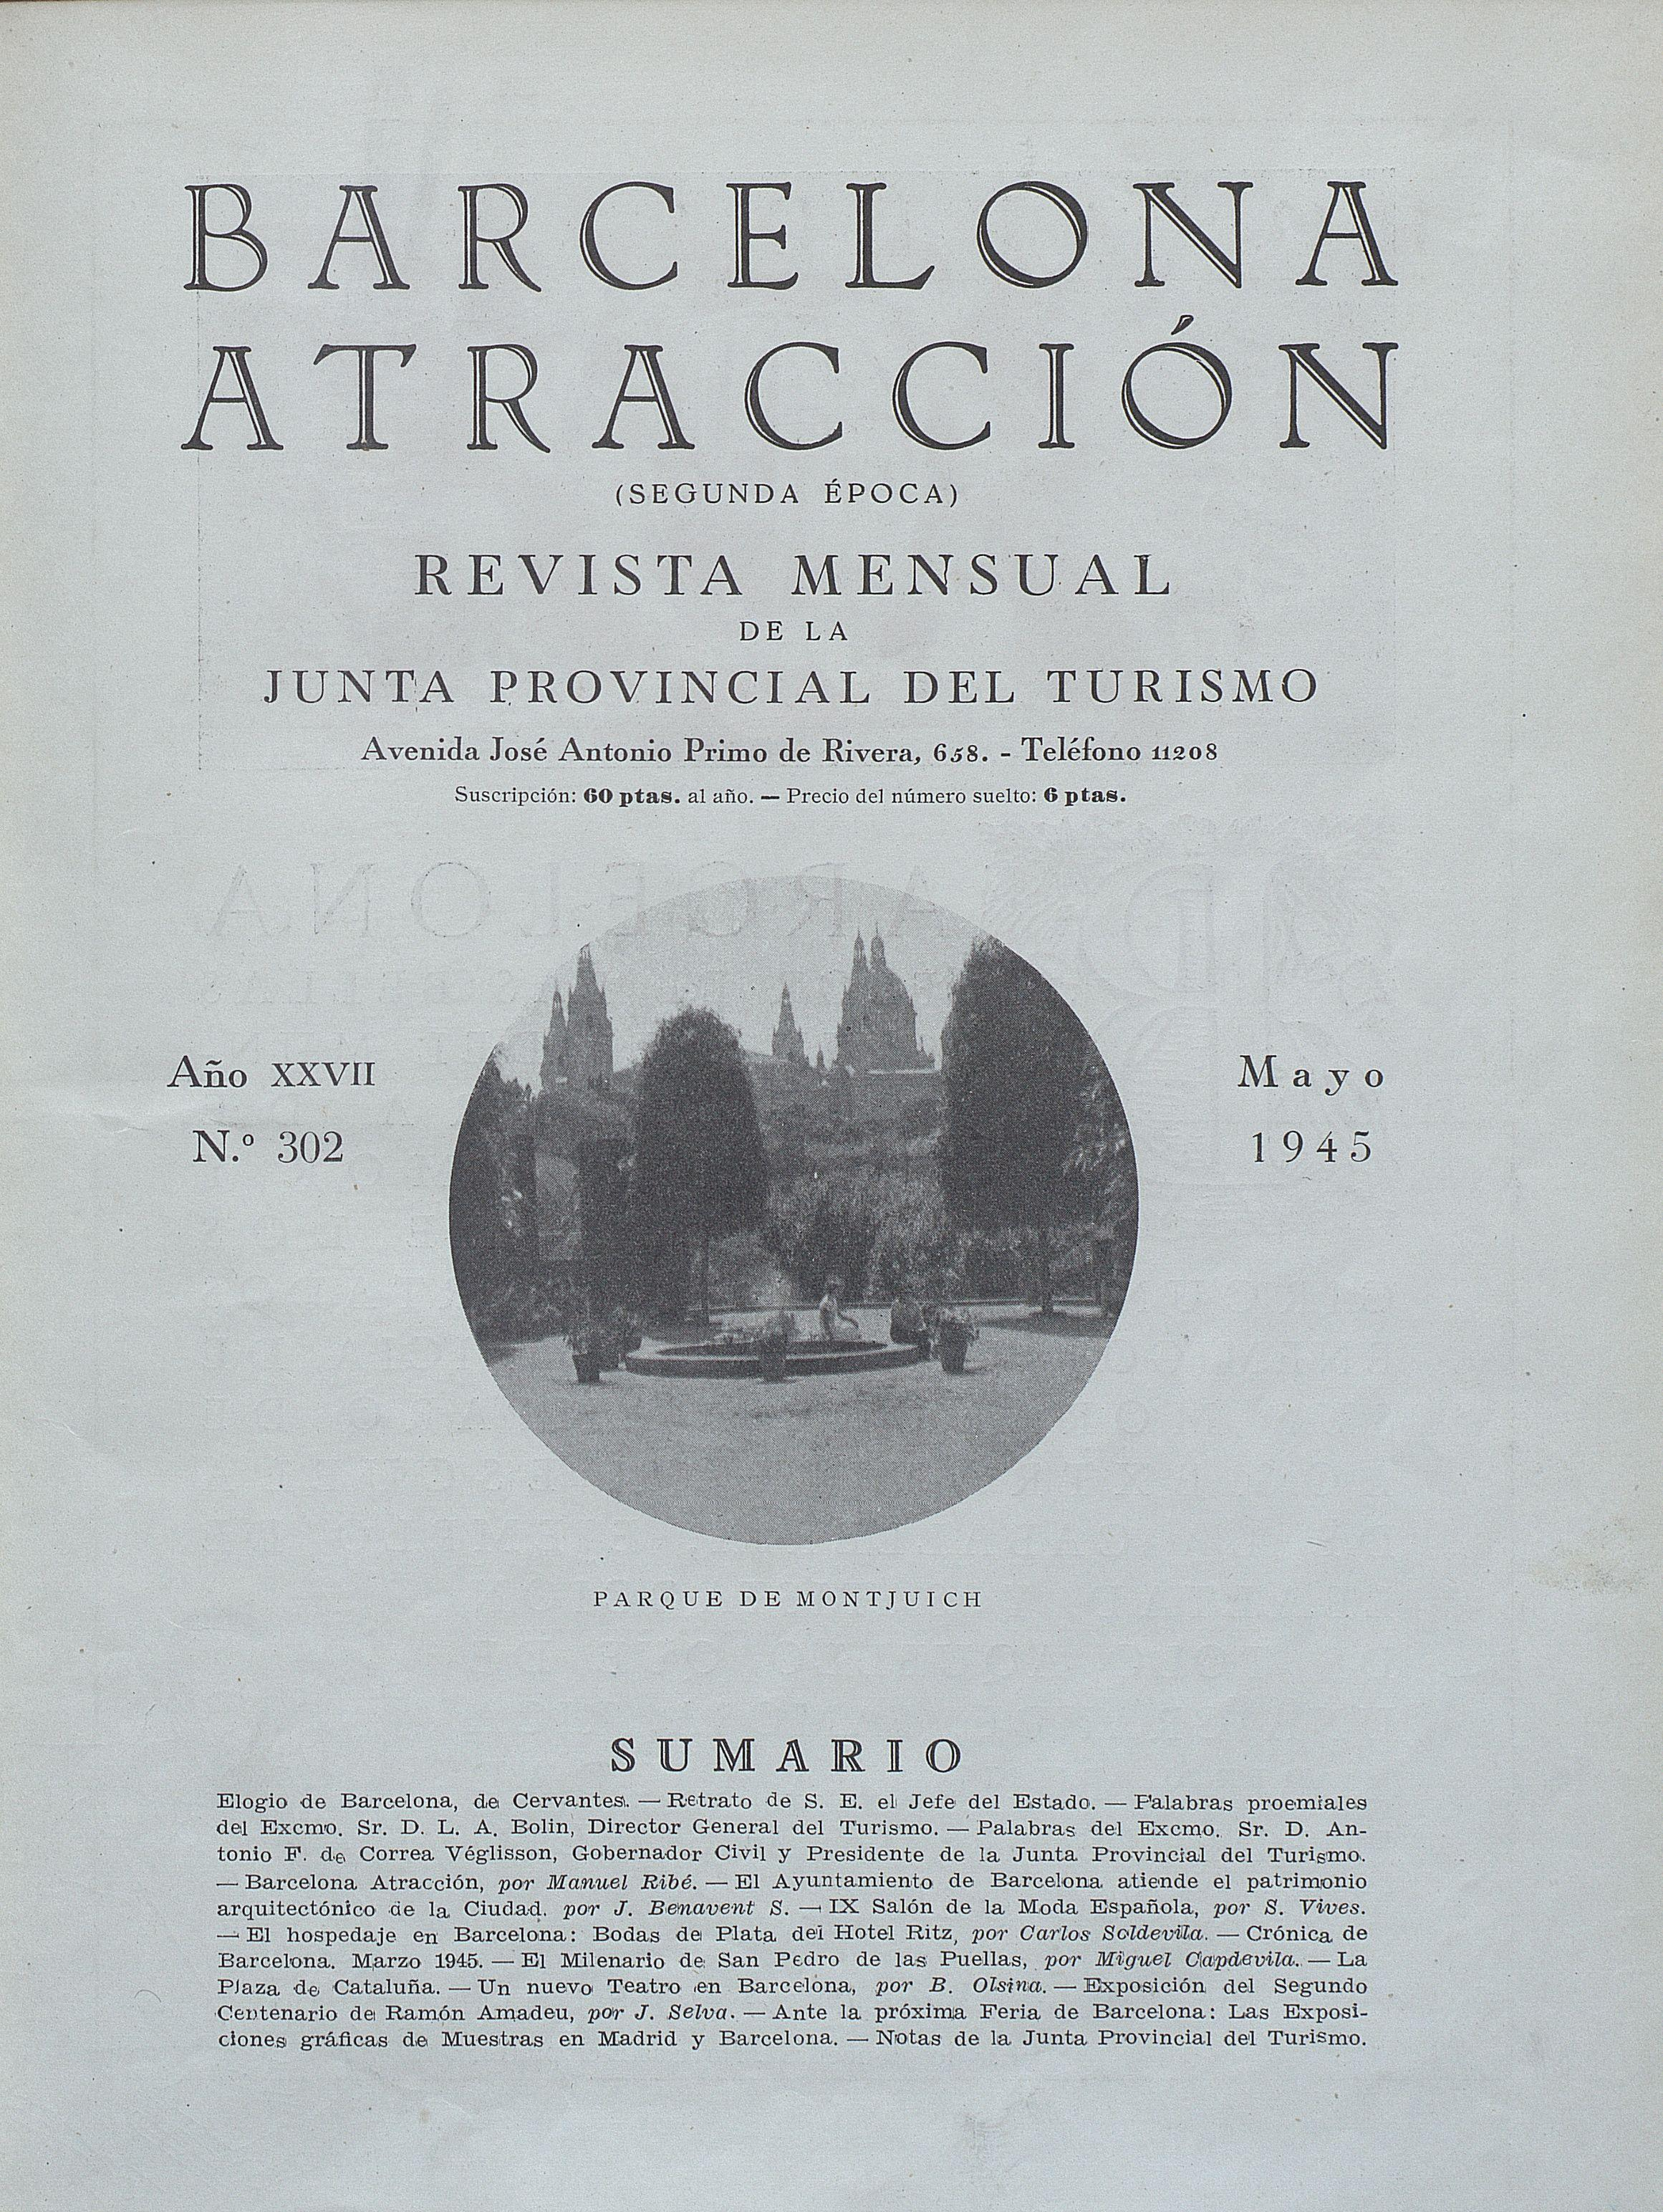 AHCB, Periodicals Library, Barcelona attraction, May 1945